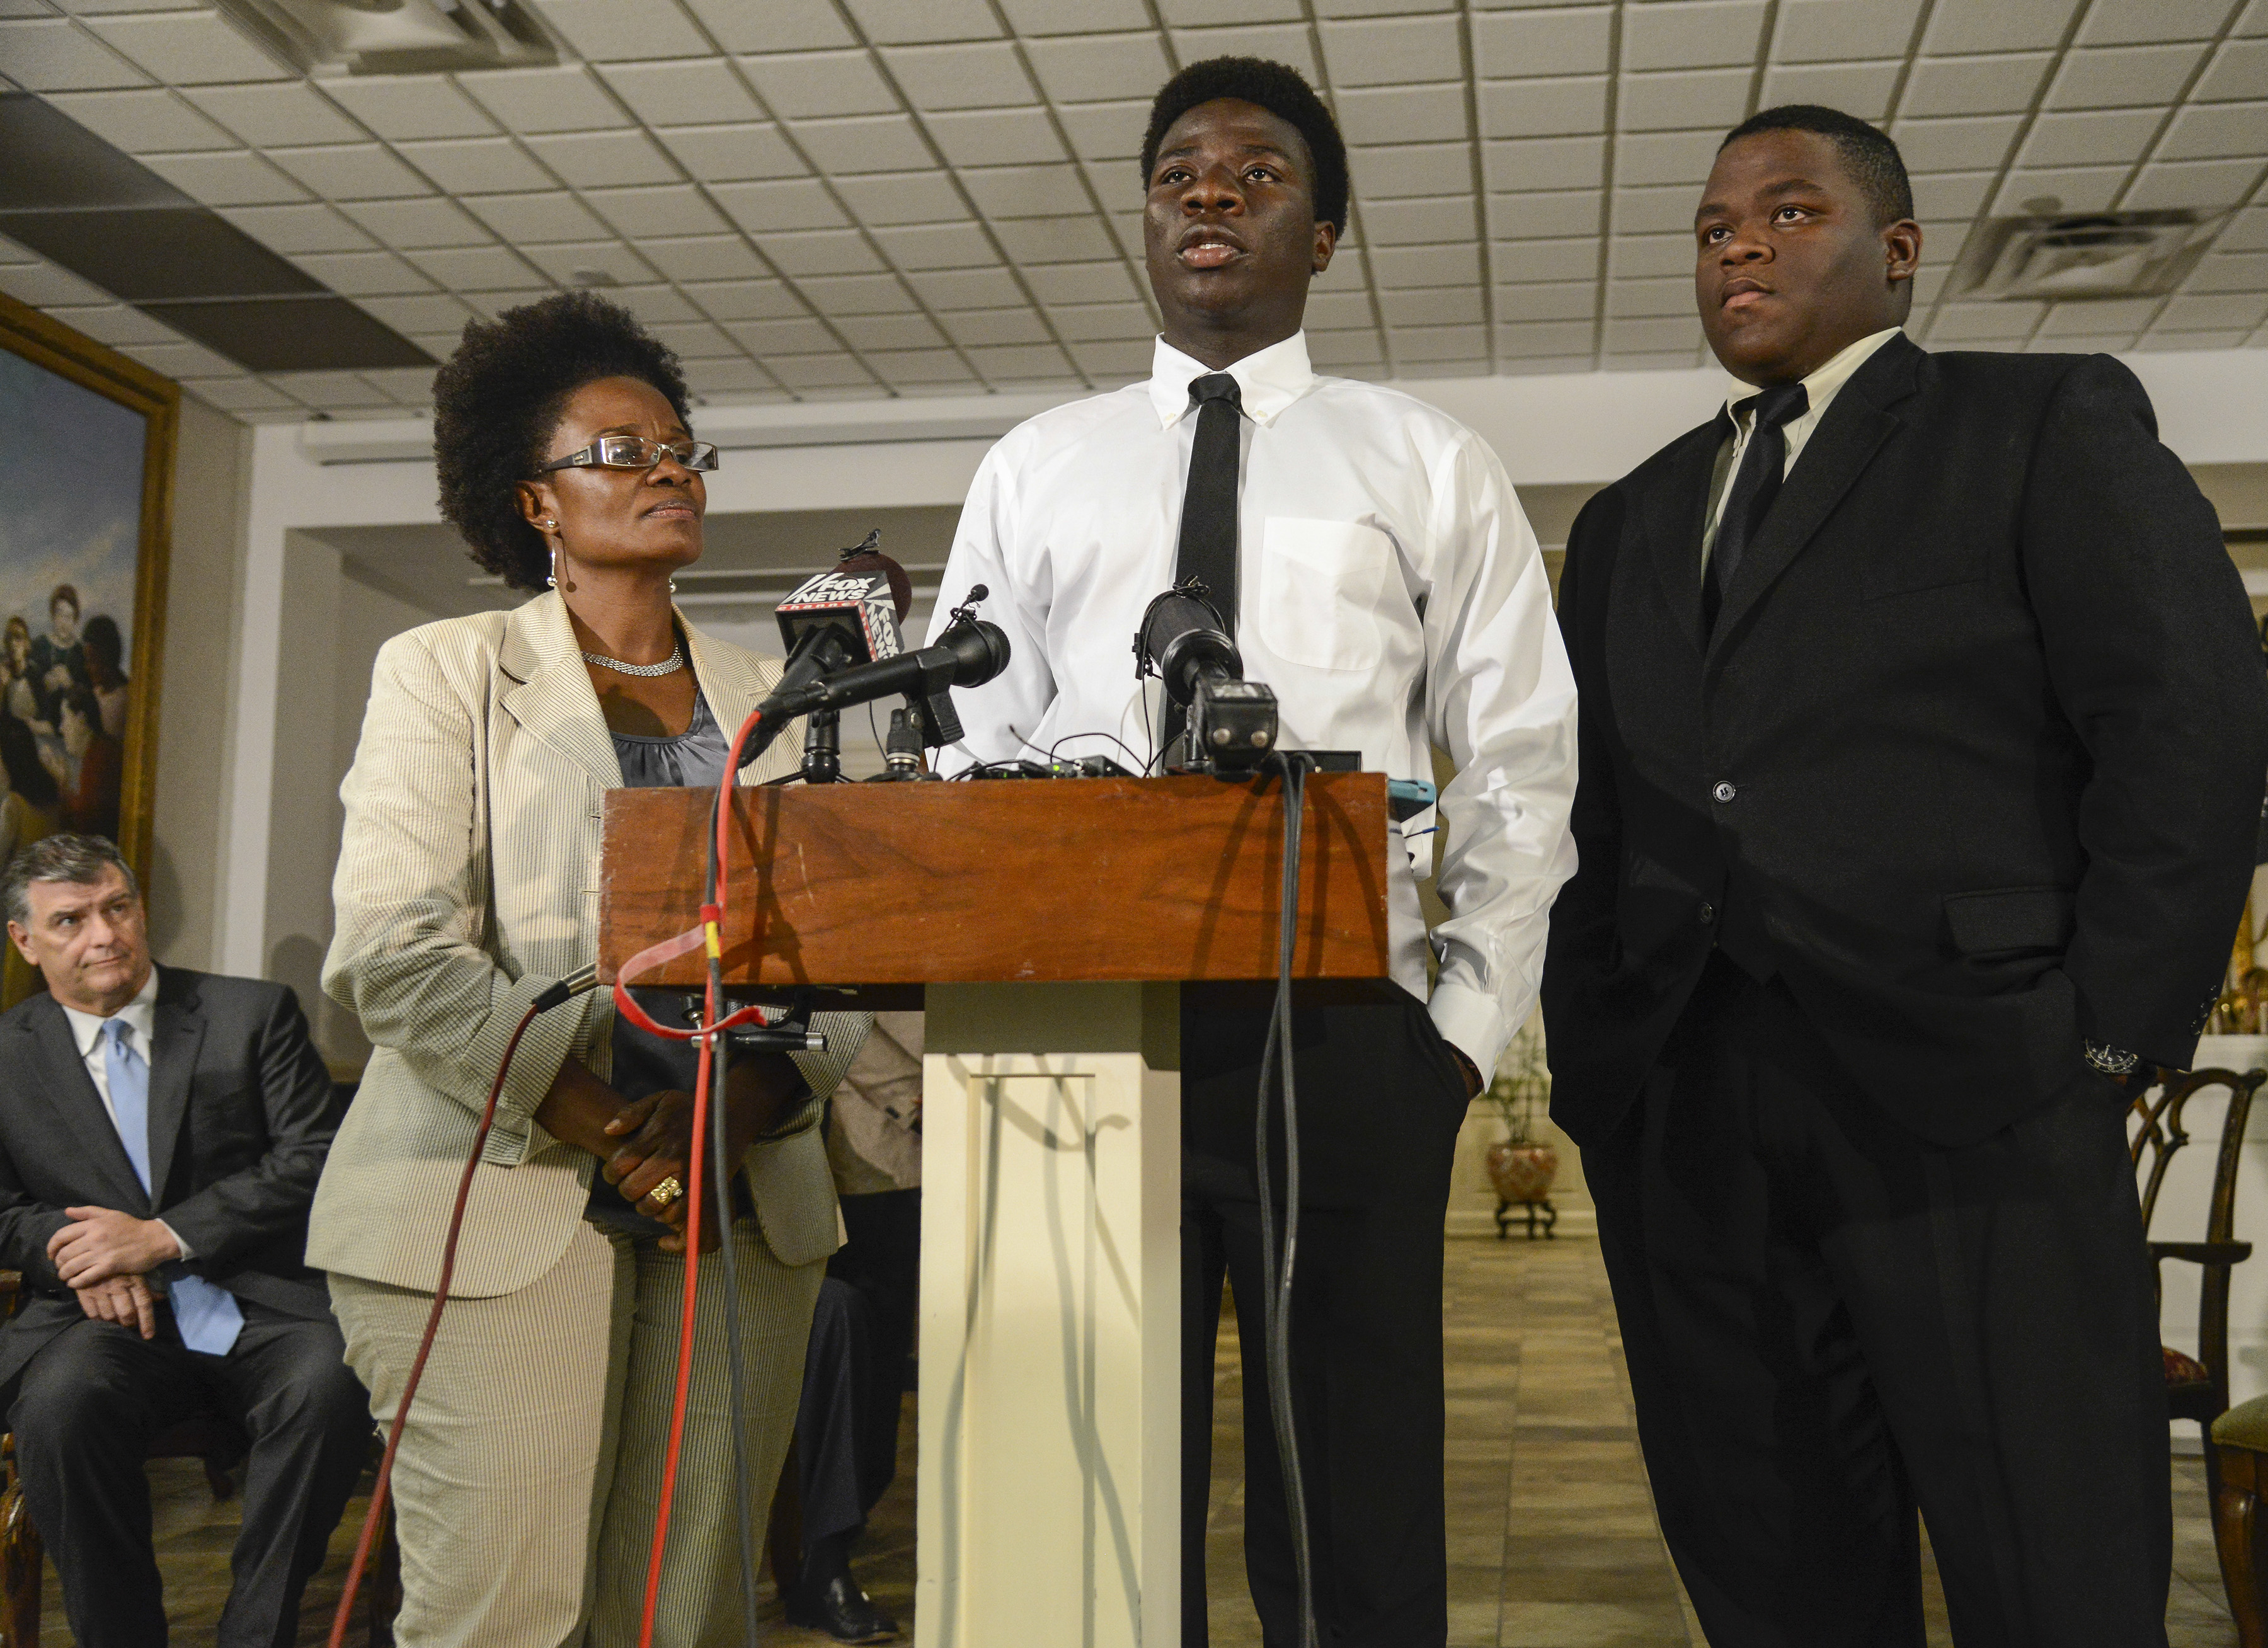 Karsiah Duncan, center, son of Ebola patient Thomas Eric Duncan speaks during a news conference while Dallas Mayor Mike Rawlings, left rear, and Saymendy Lloyd look on, Tuesday, Oct. 7, 2014, in Dallas.